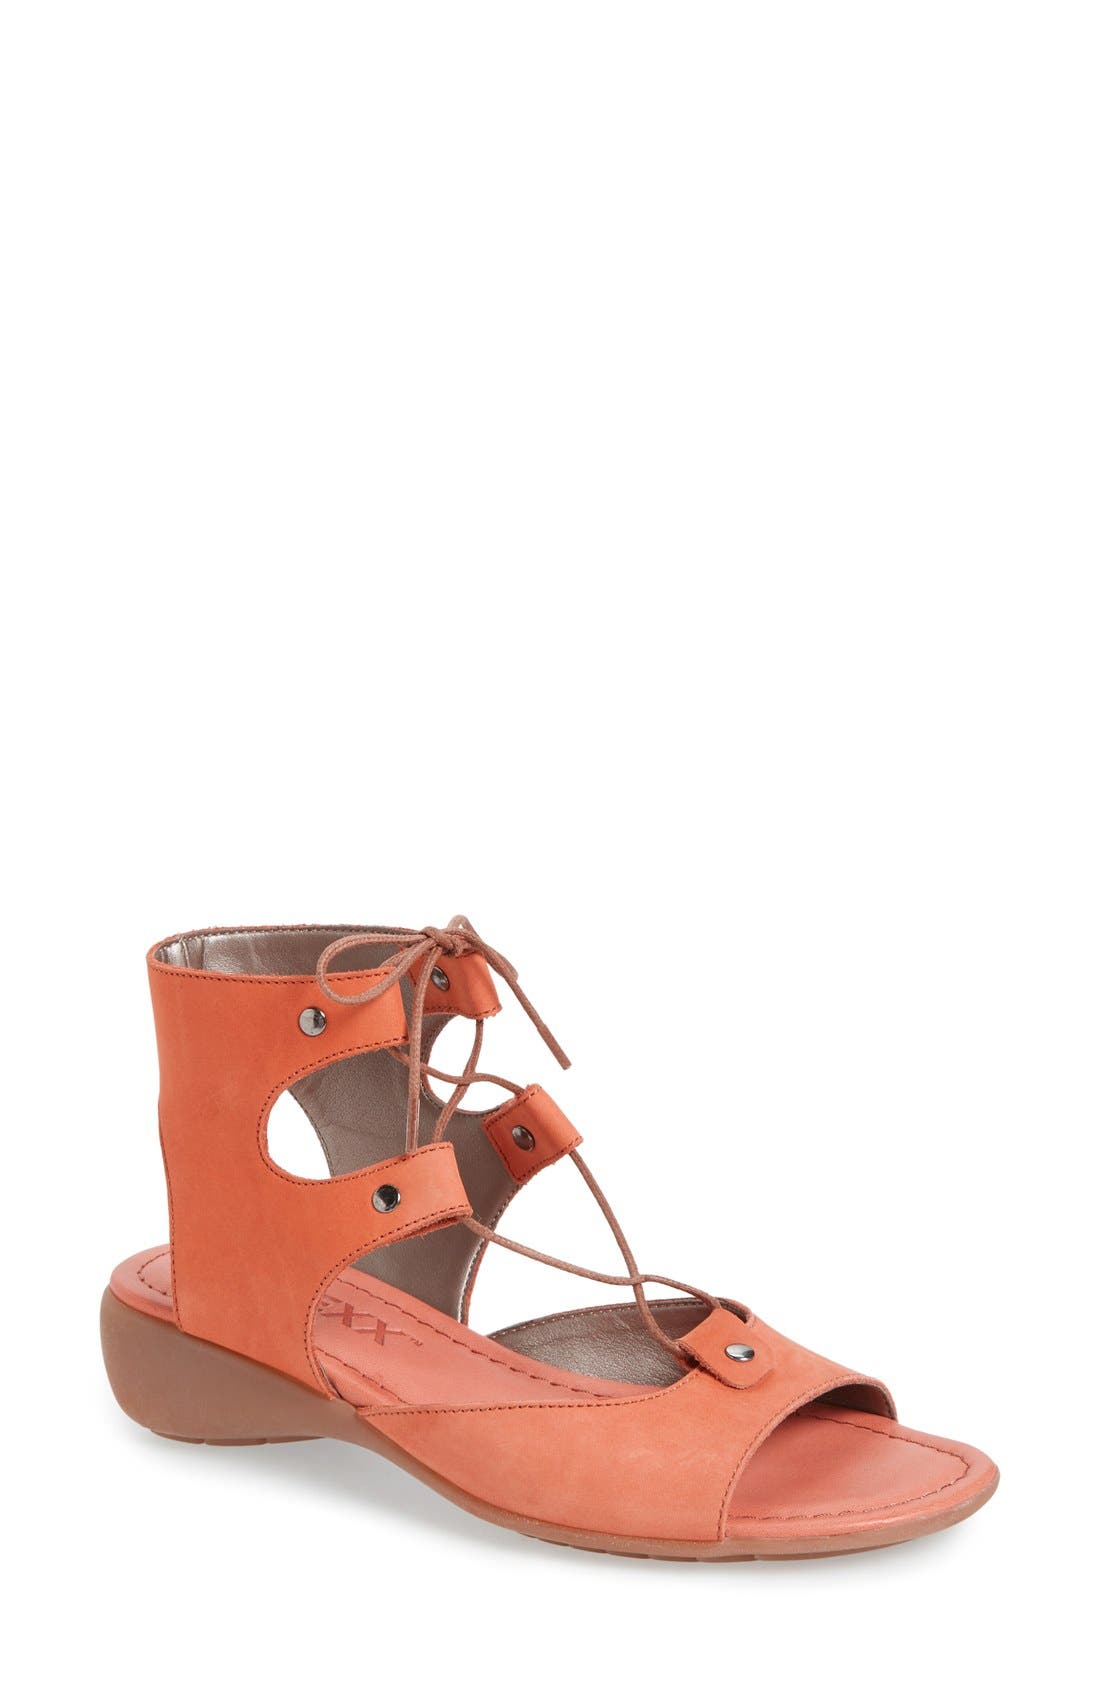 Lace-Up Gladiator Sandal,                             Main thumbnail 1, color,                             Heat Nubuck Leather